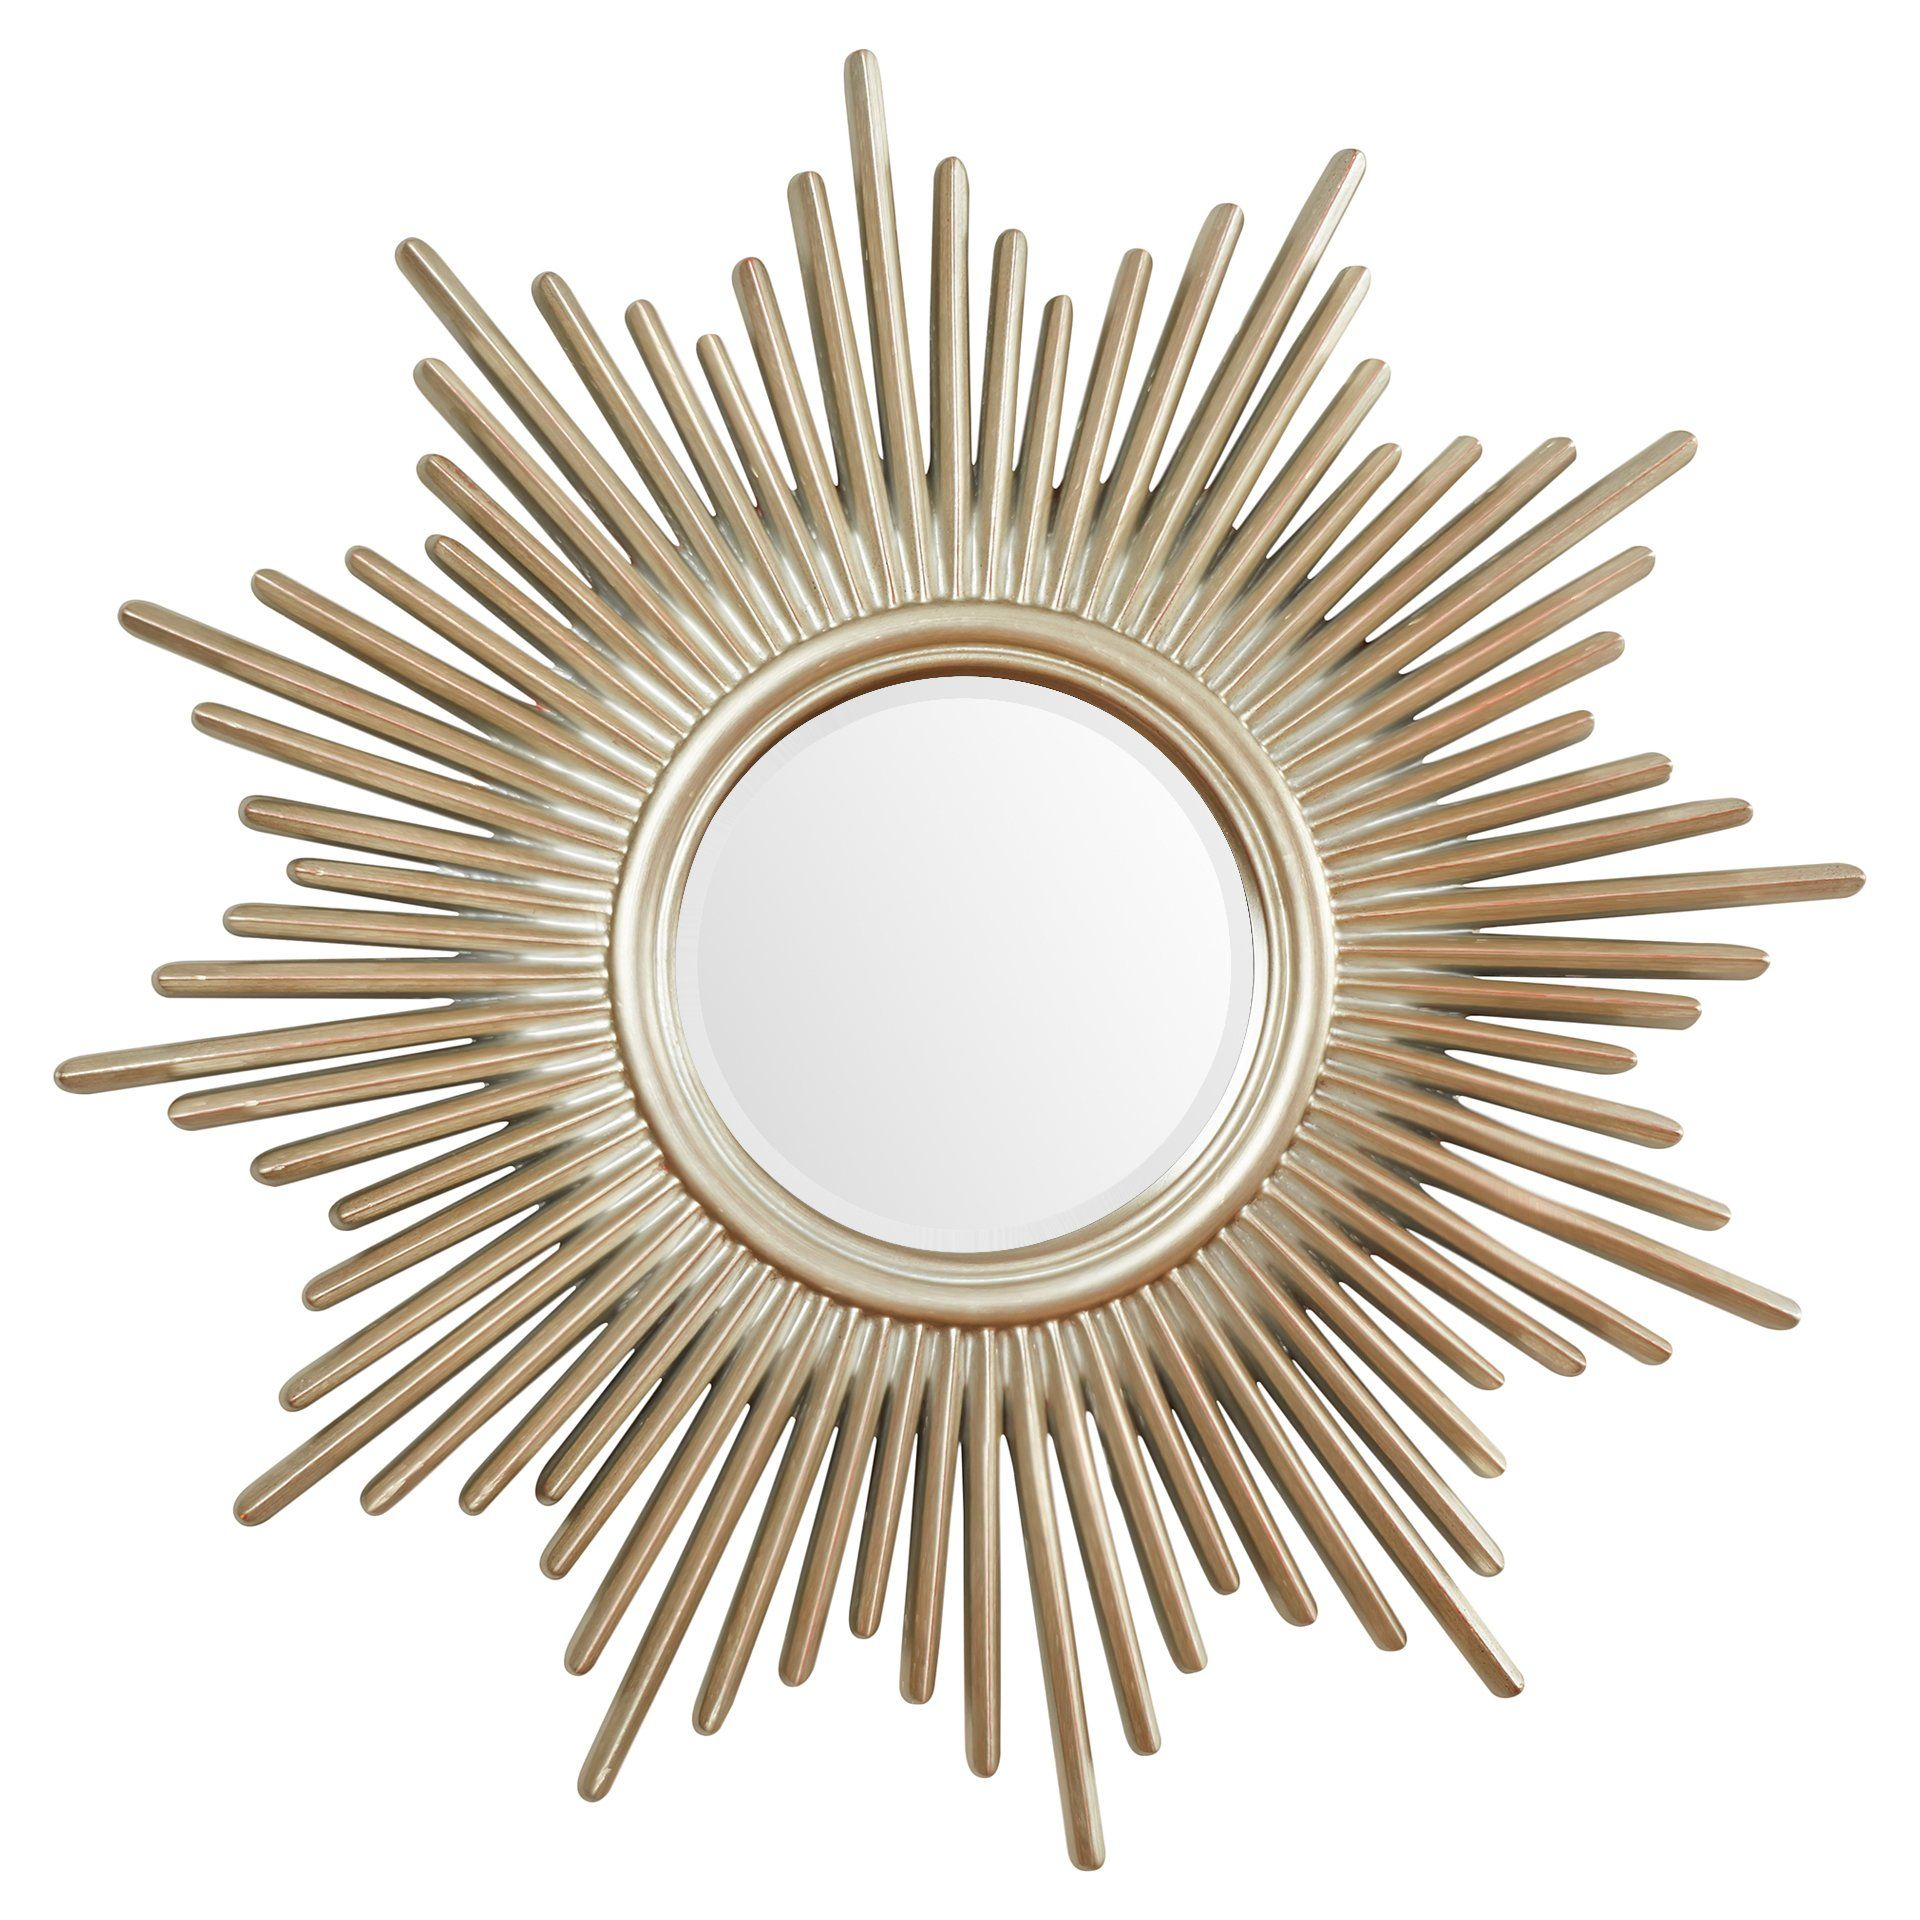 Josephson Starburst Glam Beveled Accent Wall Mirror | New For Josephson Starburst Glam Beveled Accent Wall Mirrors (Image 8 of 20)